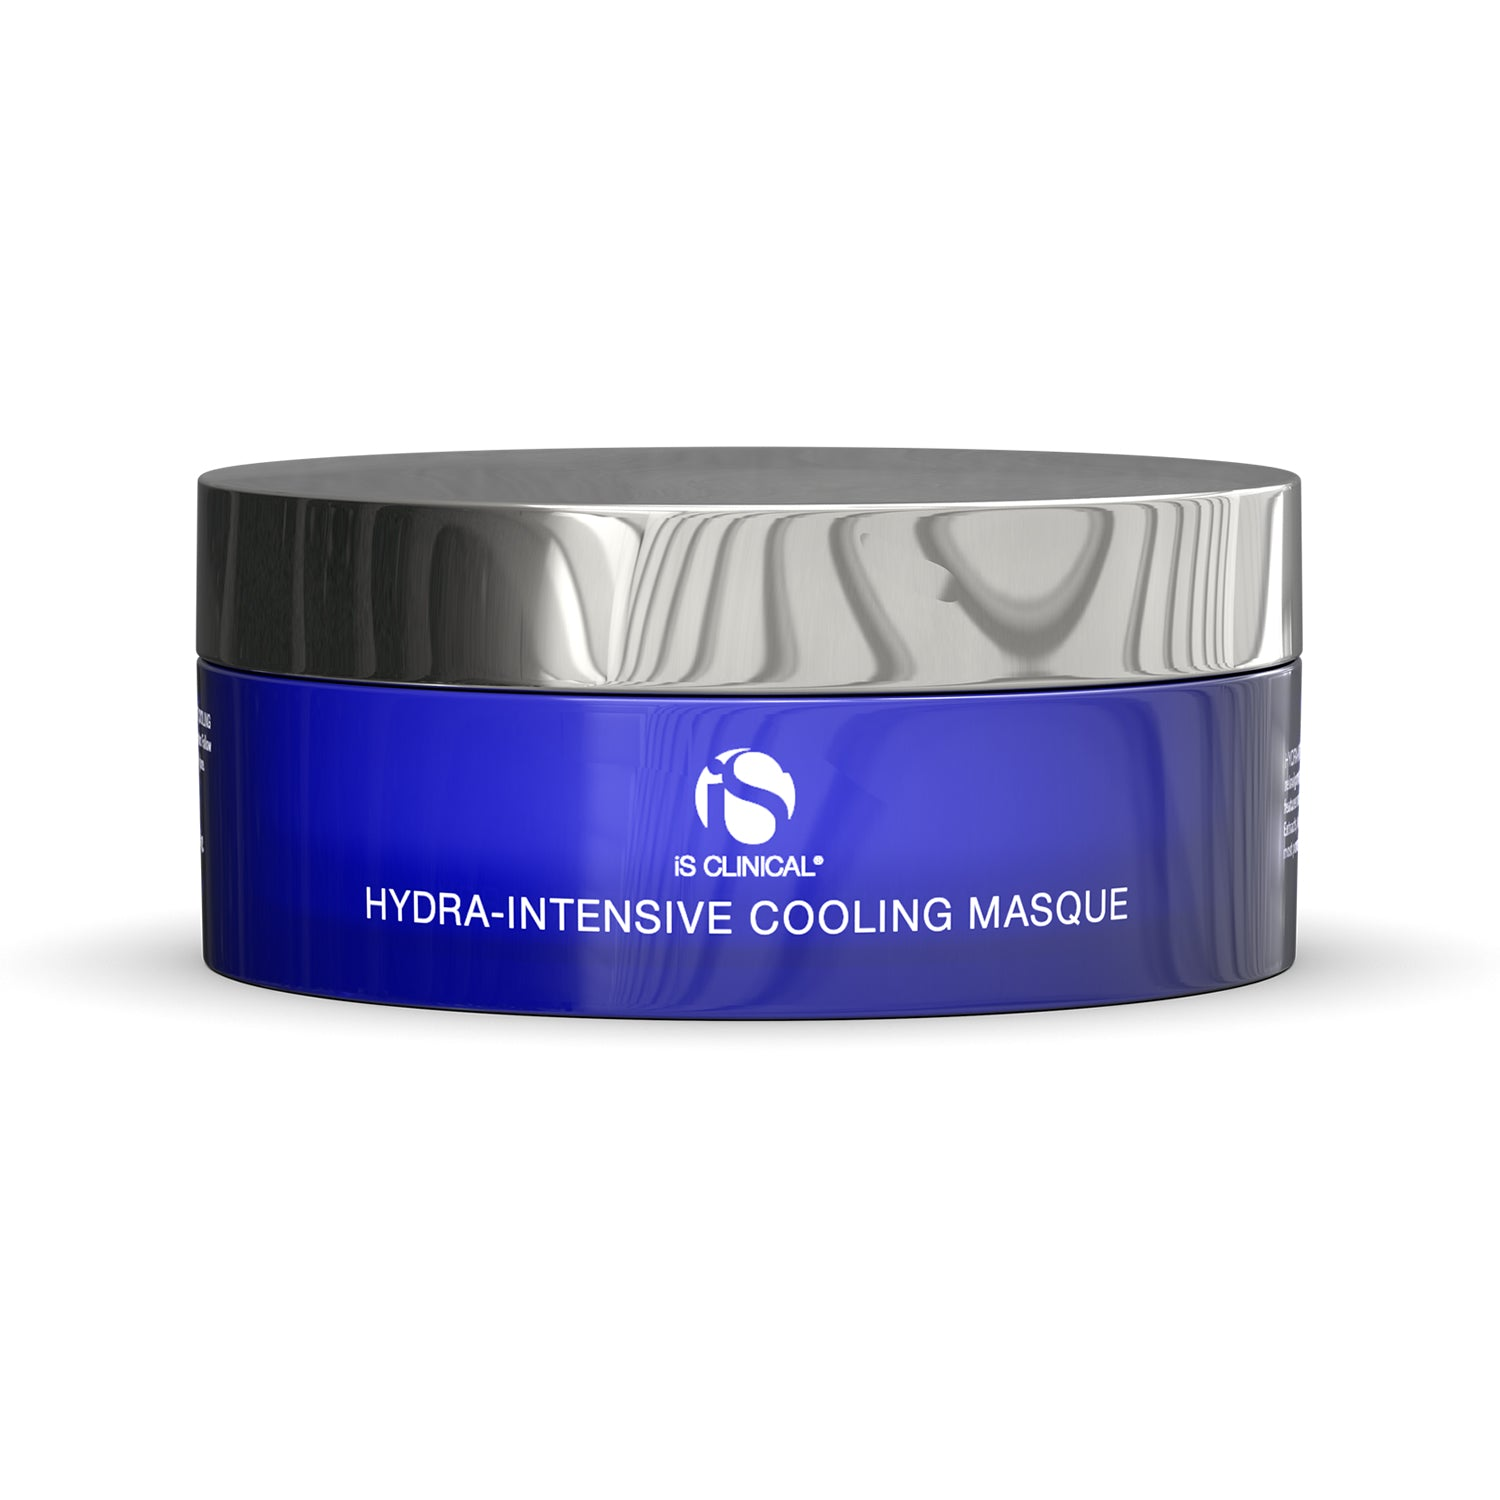 Hydra Intensive Cooing Masque